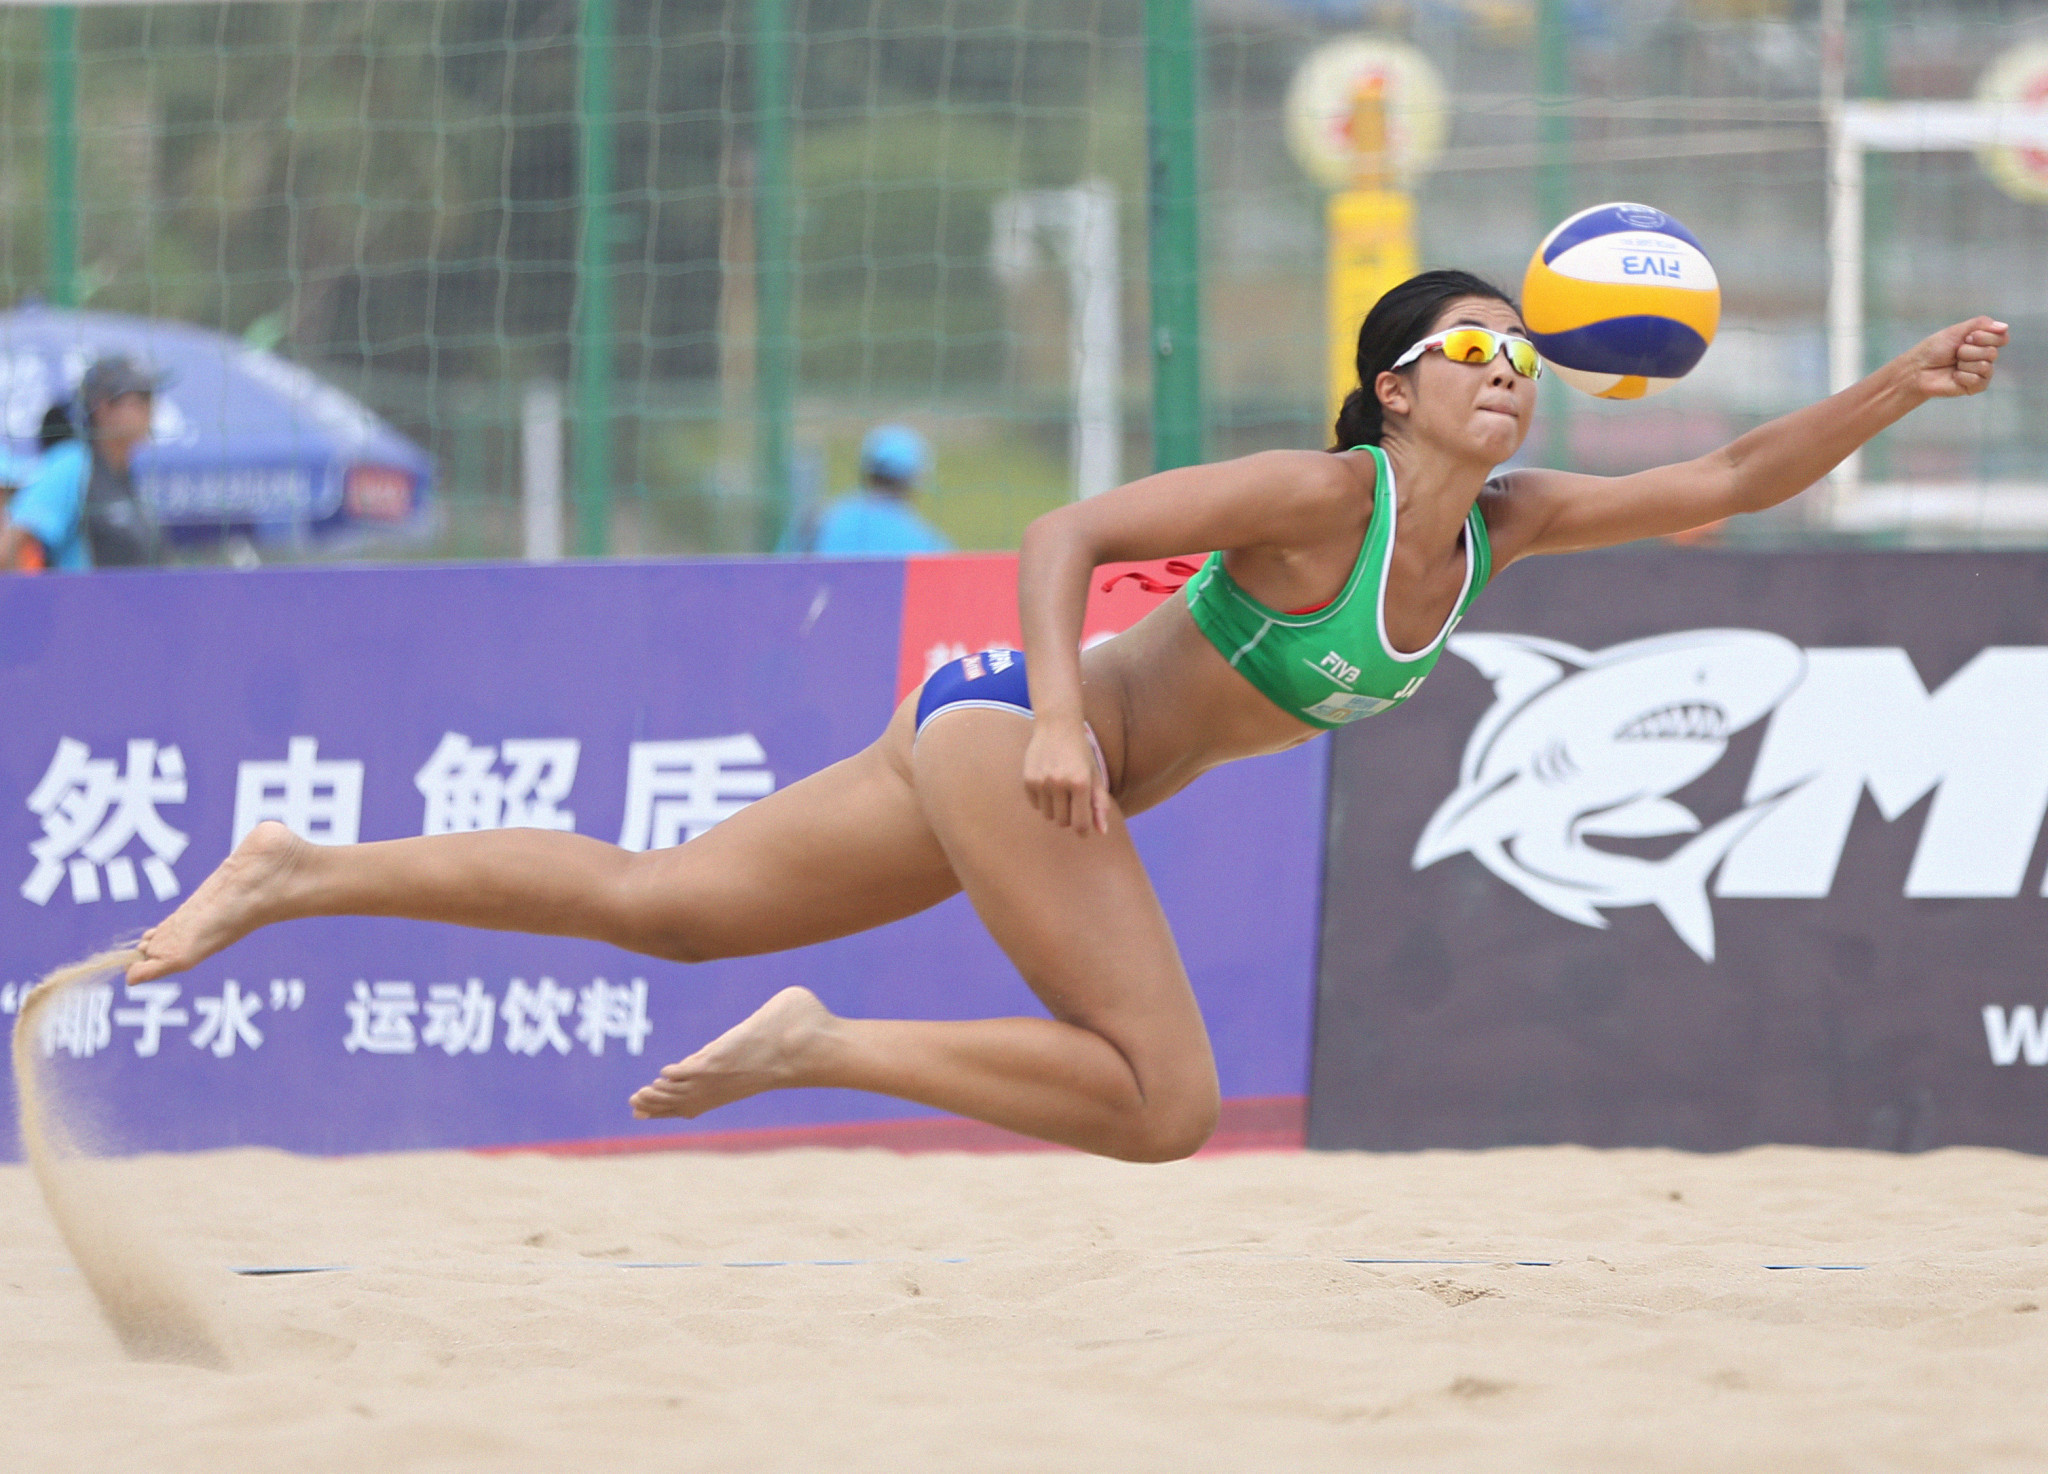 Japan's Takemi Nishibori and her partner Ayumi Kusano were one of four Japanese teams that progressed to the round-of-16 at the FIVB Beach Volleyball World Tour event in Phnom Penh ©Getty Images